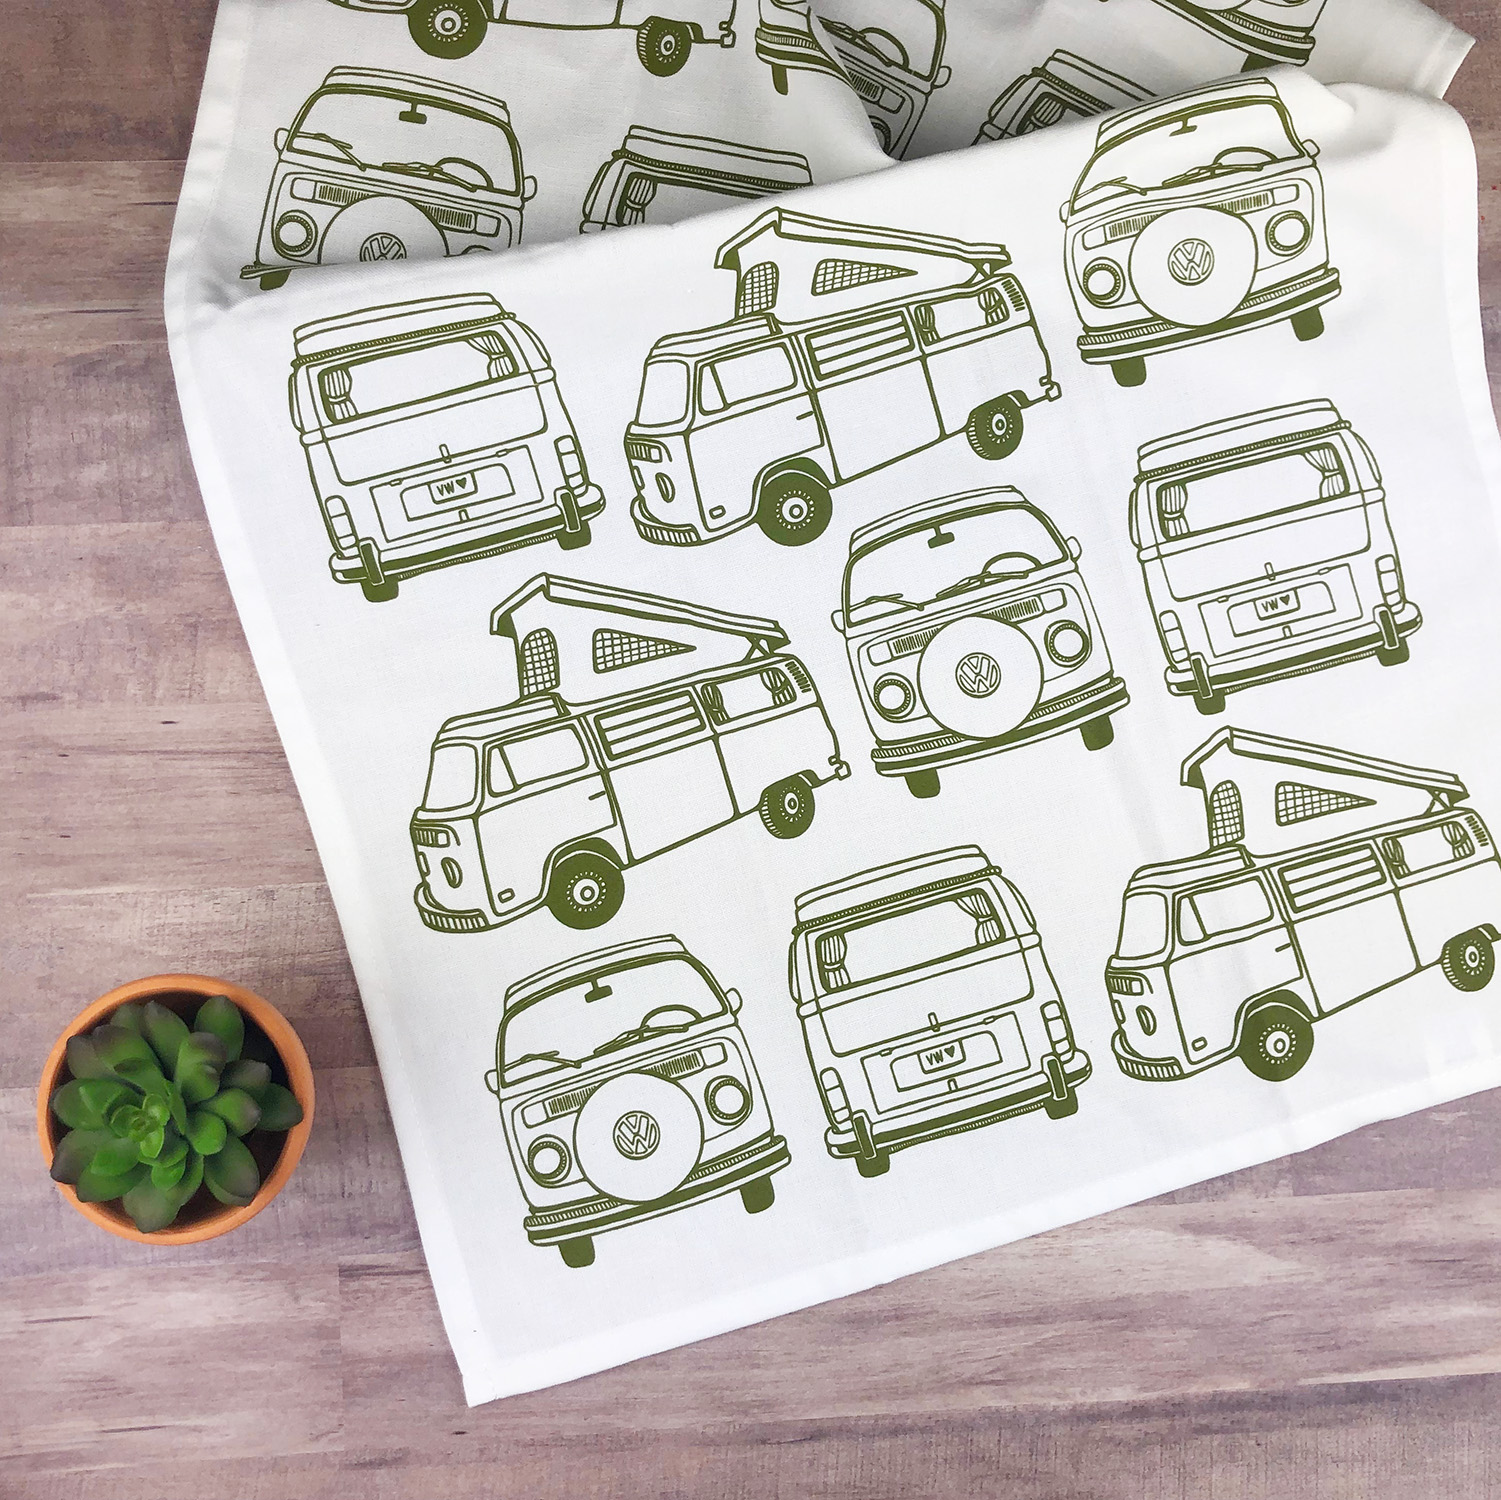 The VW Bus screen printed tea towel is sure to bring some personality and charm to your kitchen.